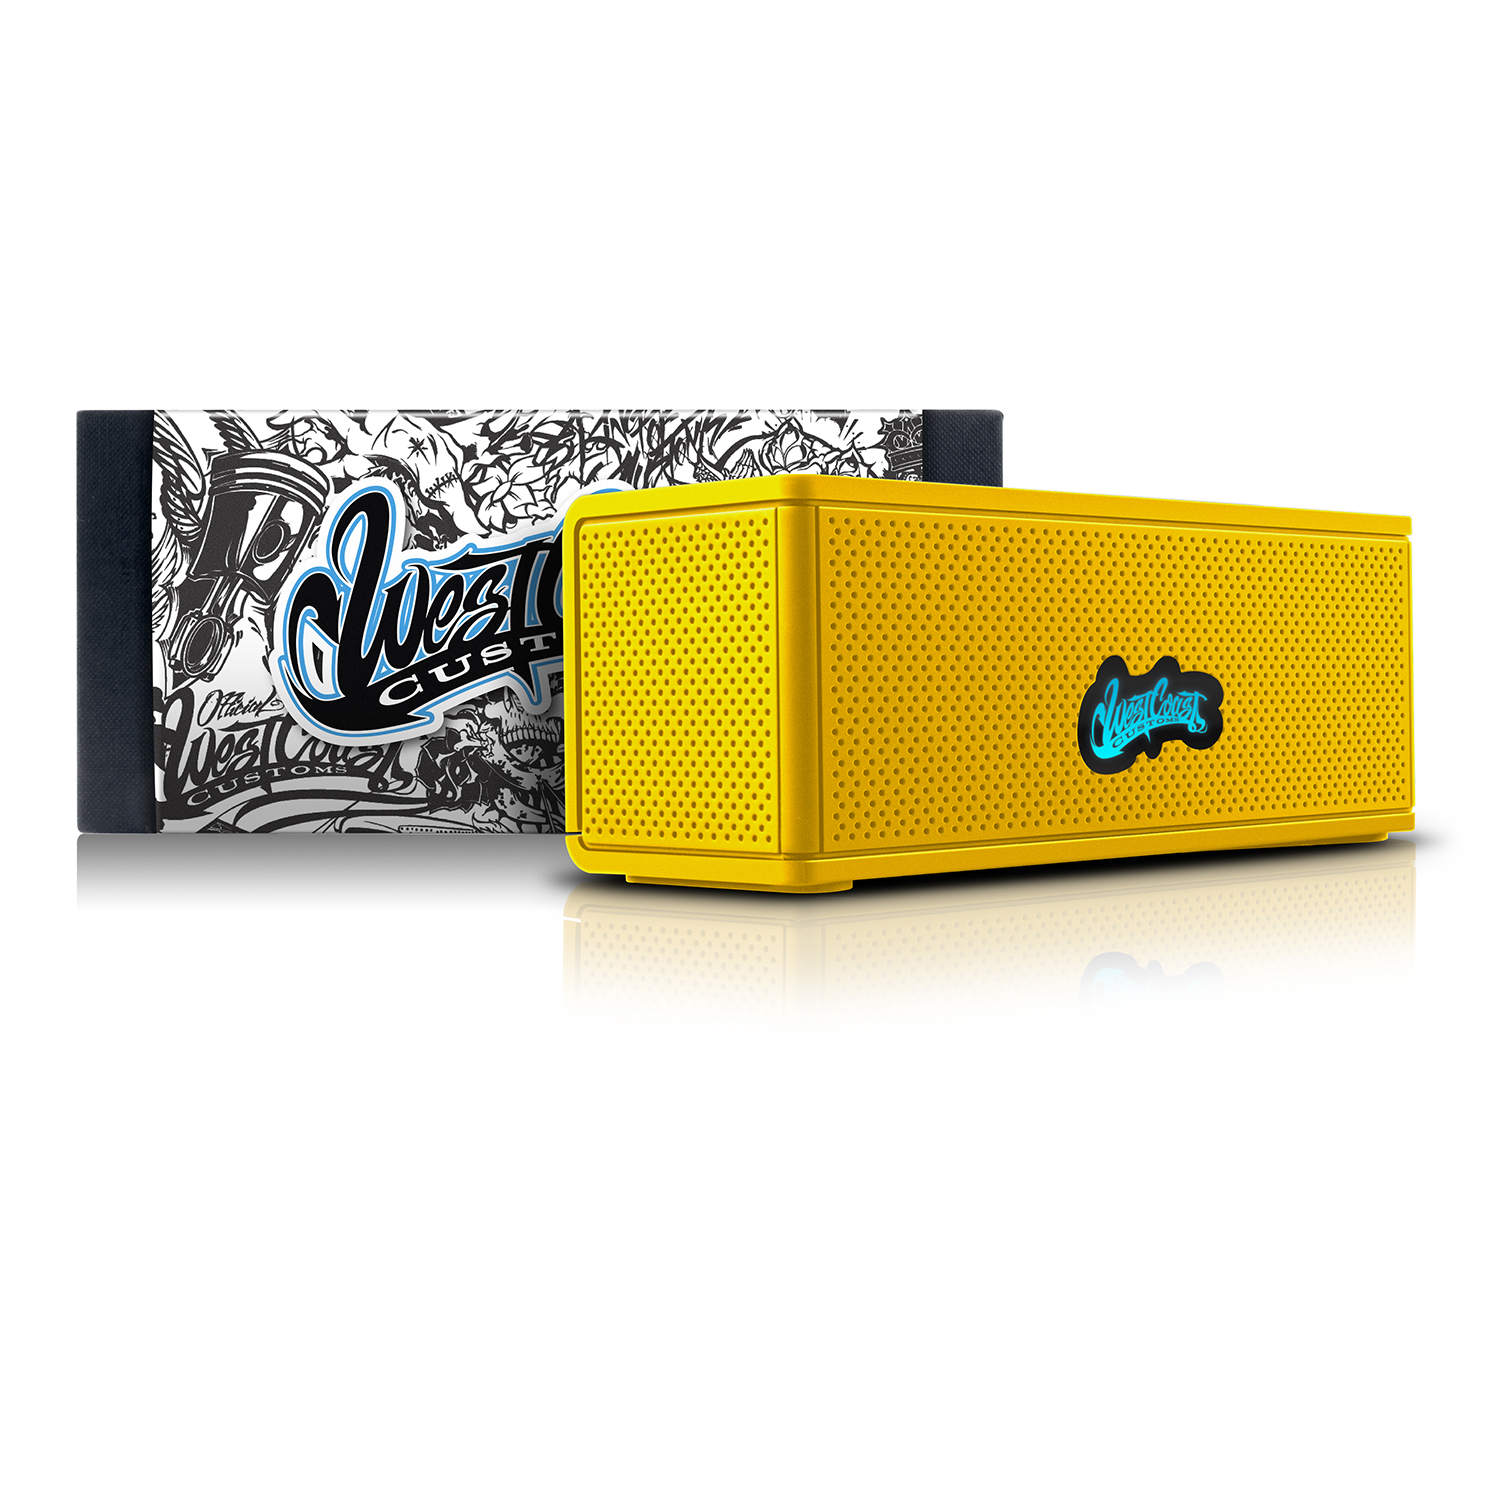 West Coast Customs Portable Wireless Bluetooth Speaker. Bulit-in Speakerphone and 8-Hour Battery Life - Yellow